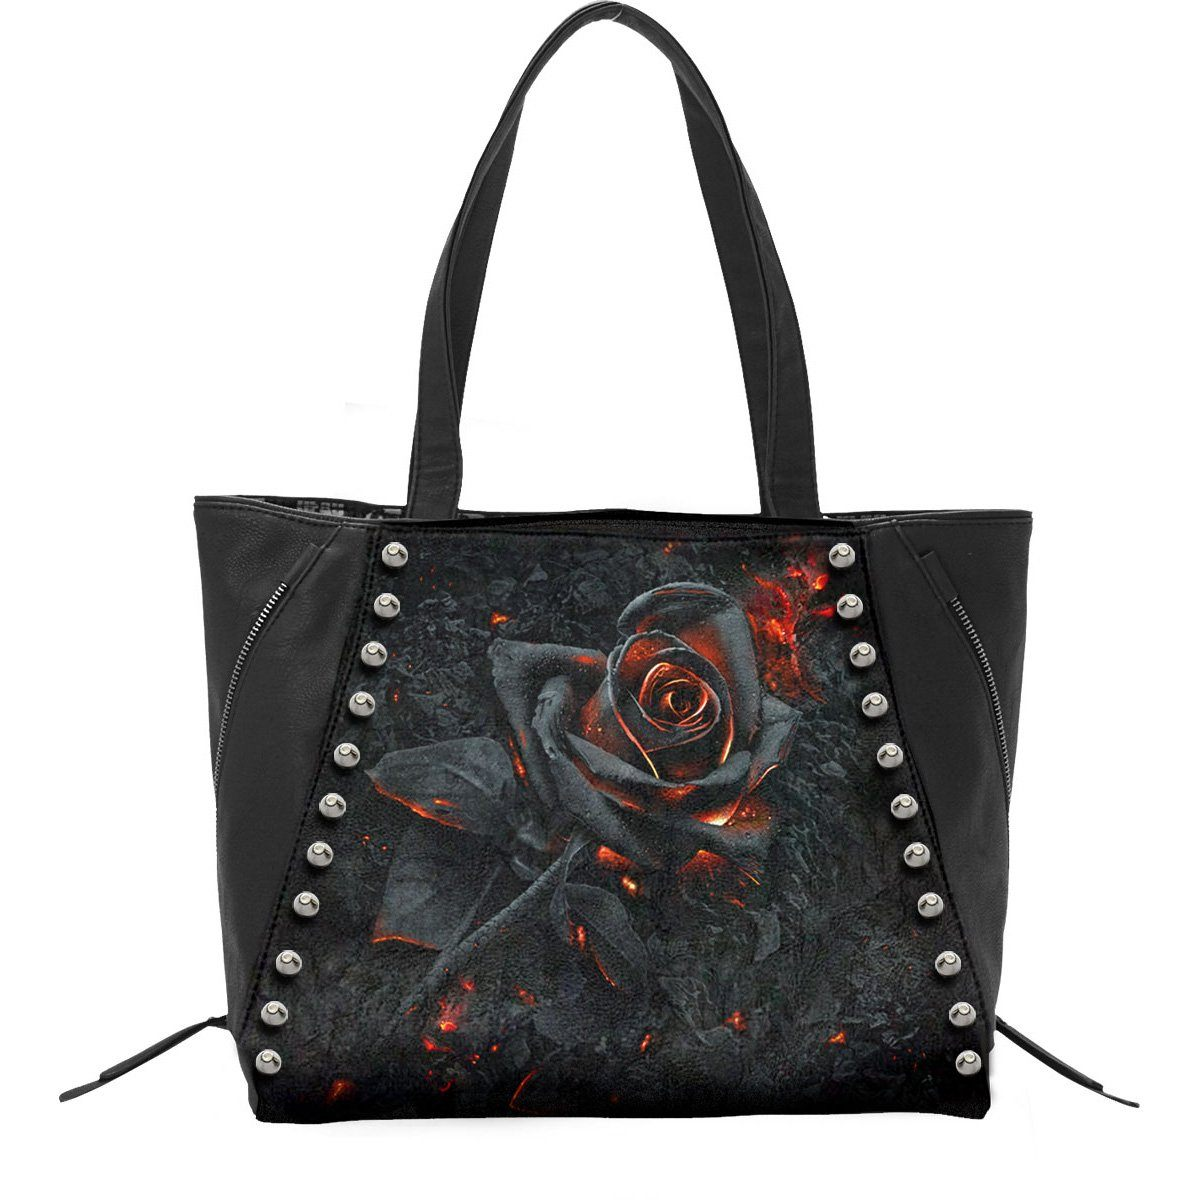 BURNT ROSE - Tote Bag - Top quality PU Leather Studded - Rebels Depot